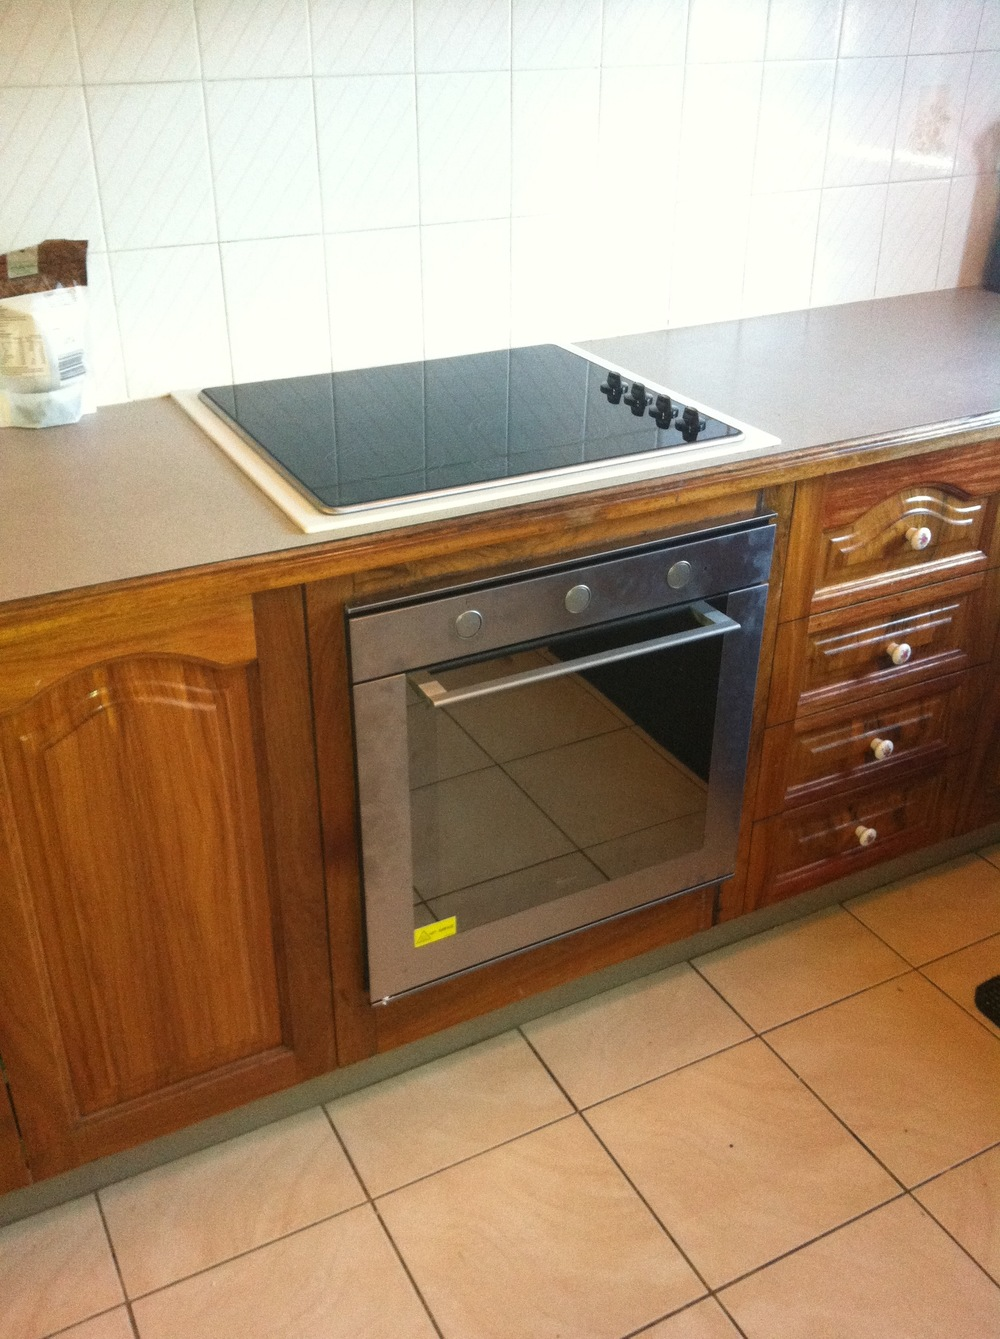 Kitchen appliance installations and maintenance